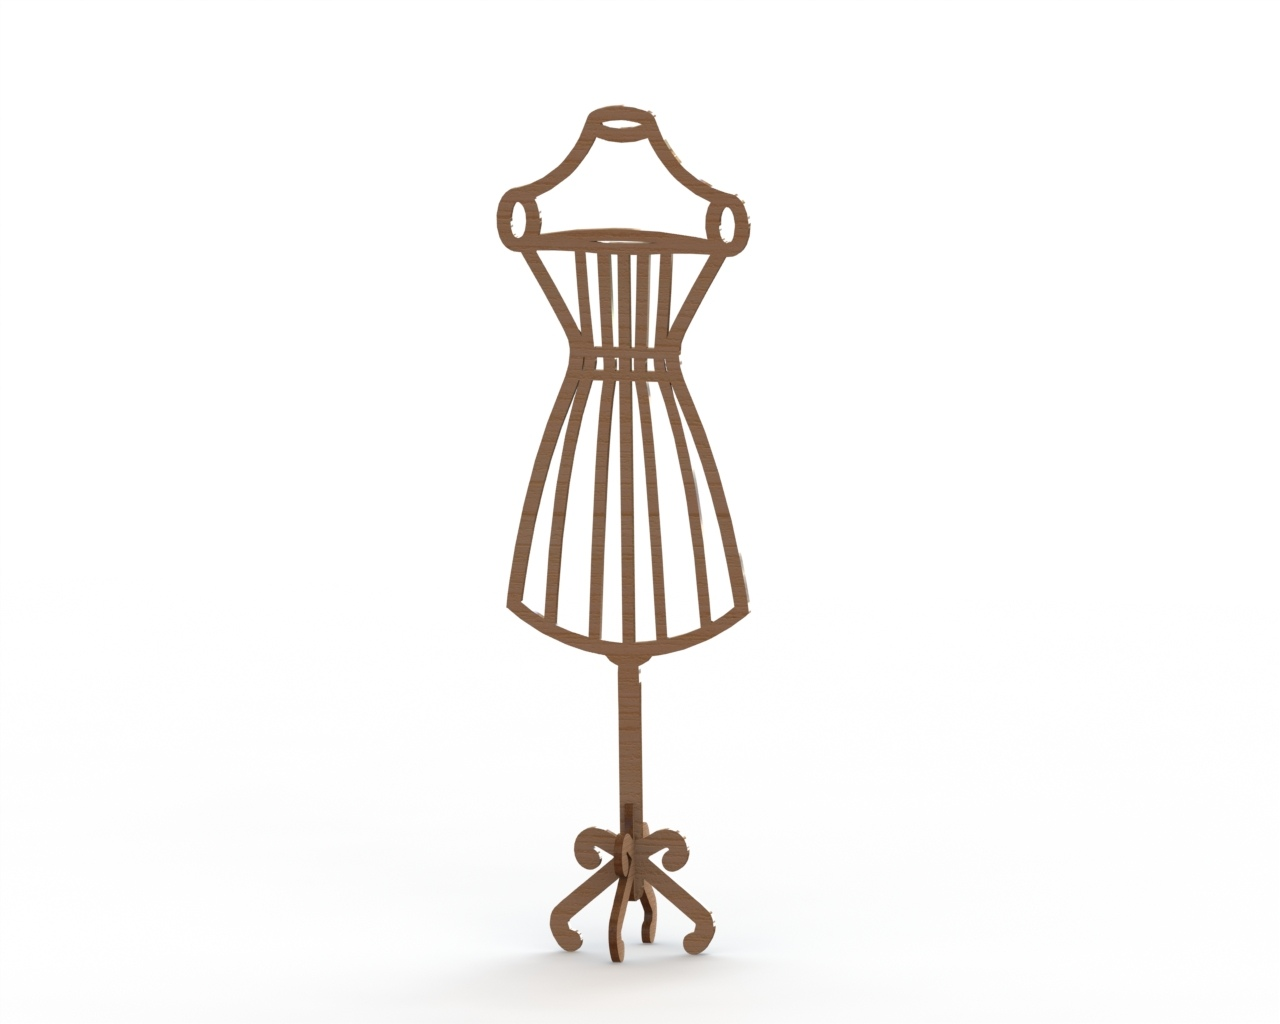 Mannequin MDF Dress Form Laser Cut 6mm Free Vector